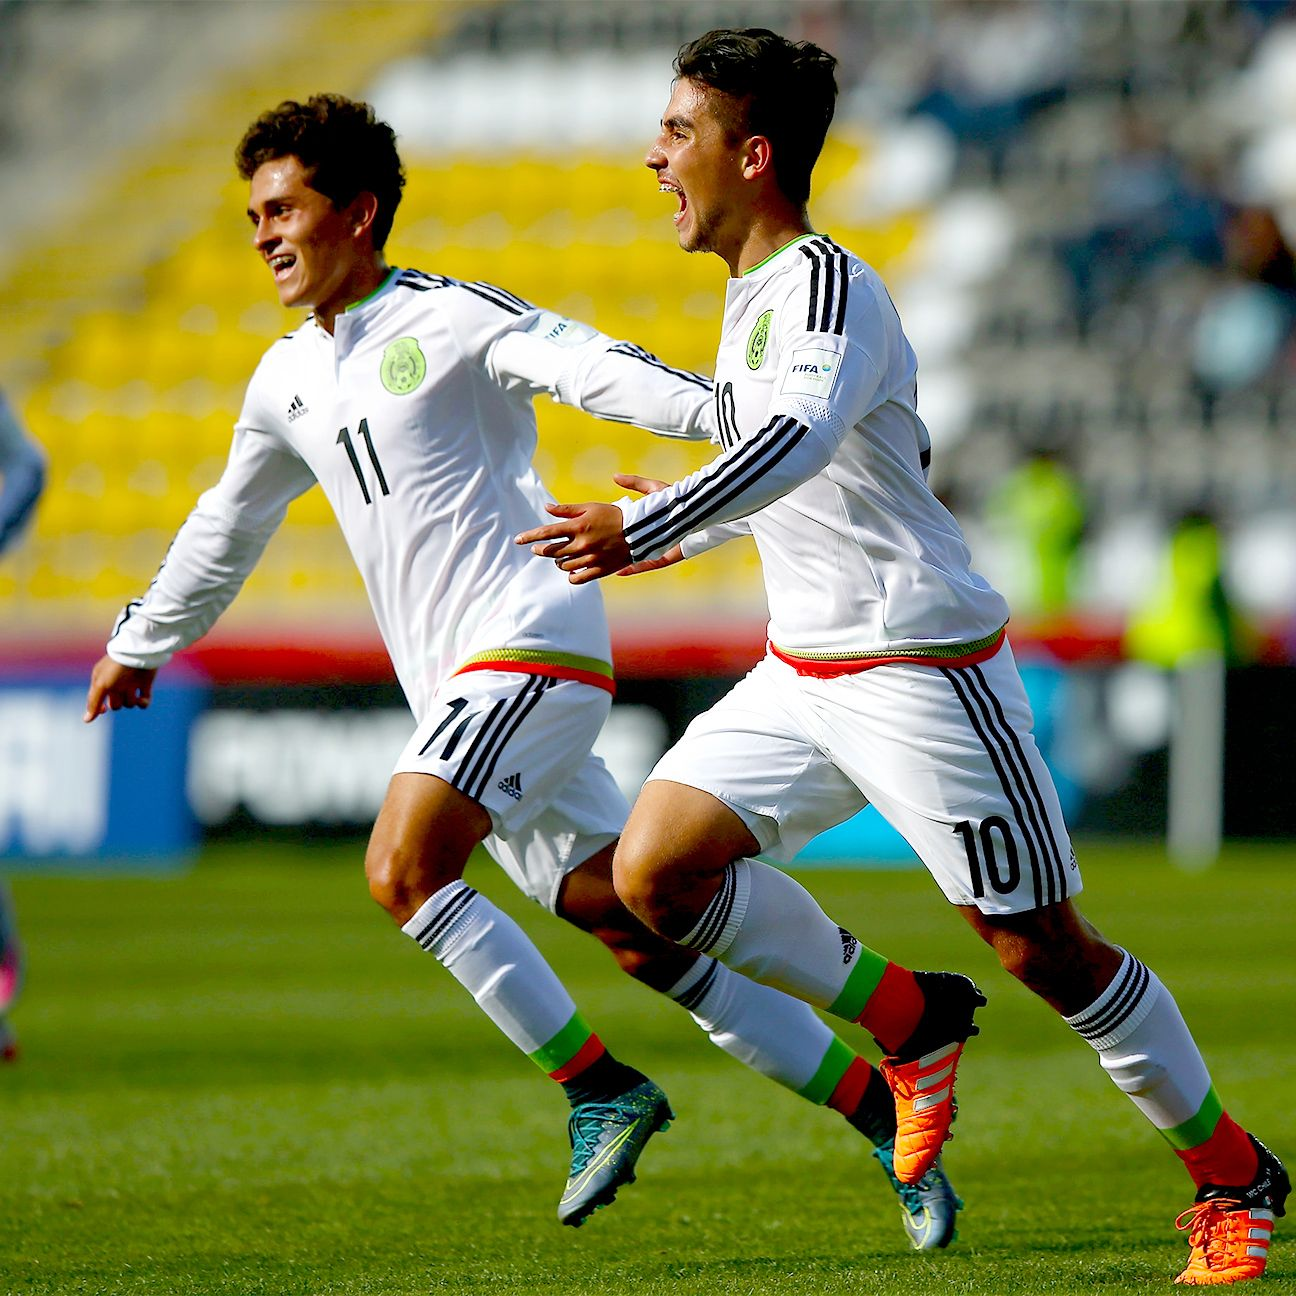 The Mexico Under-17s are off to their third straight World Cup semifinal following Monday's 2-0 win over Ecuador.